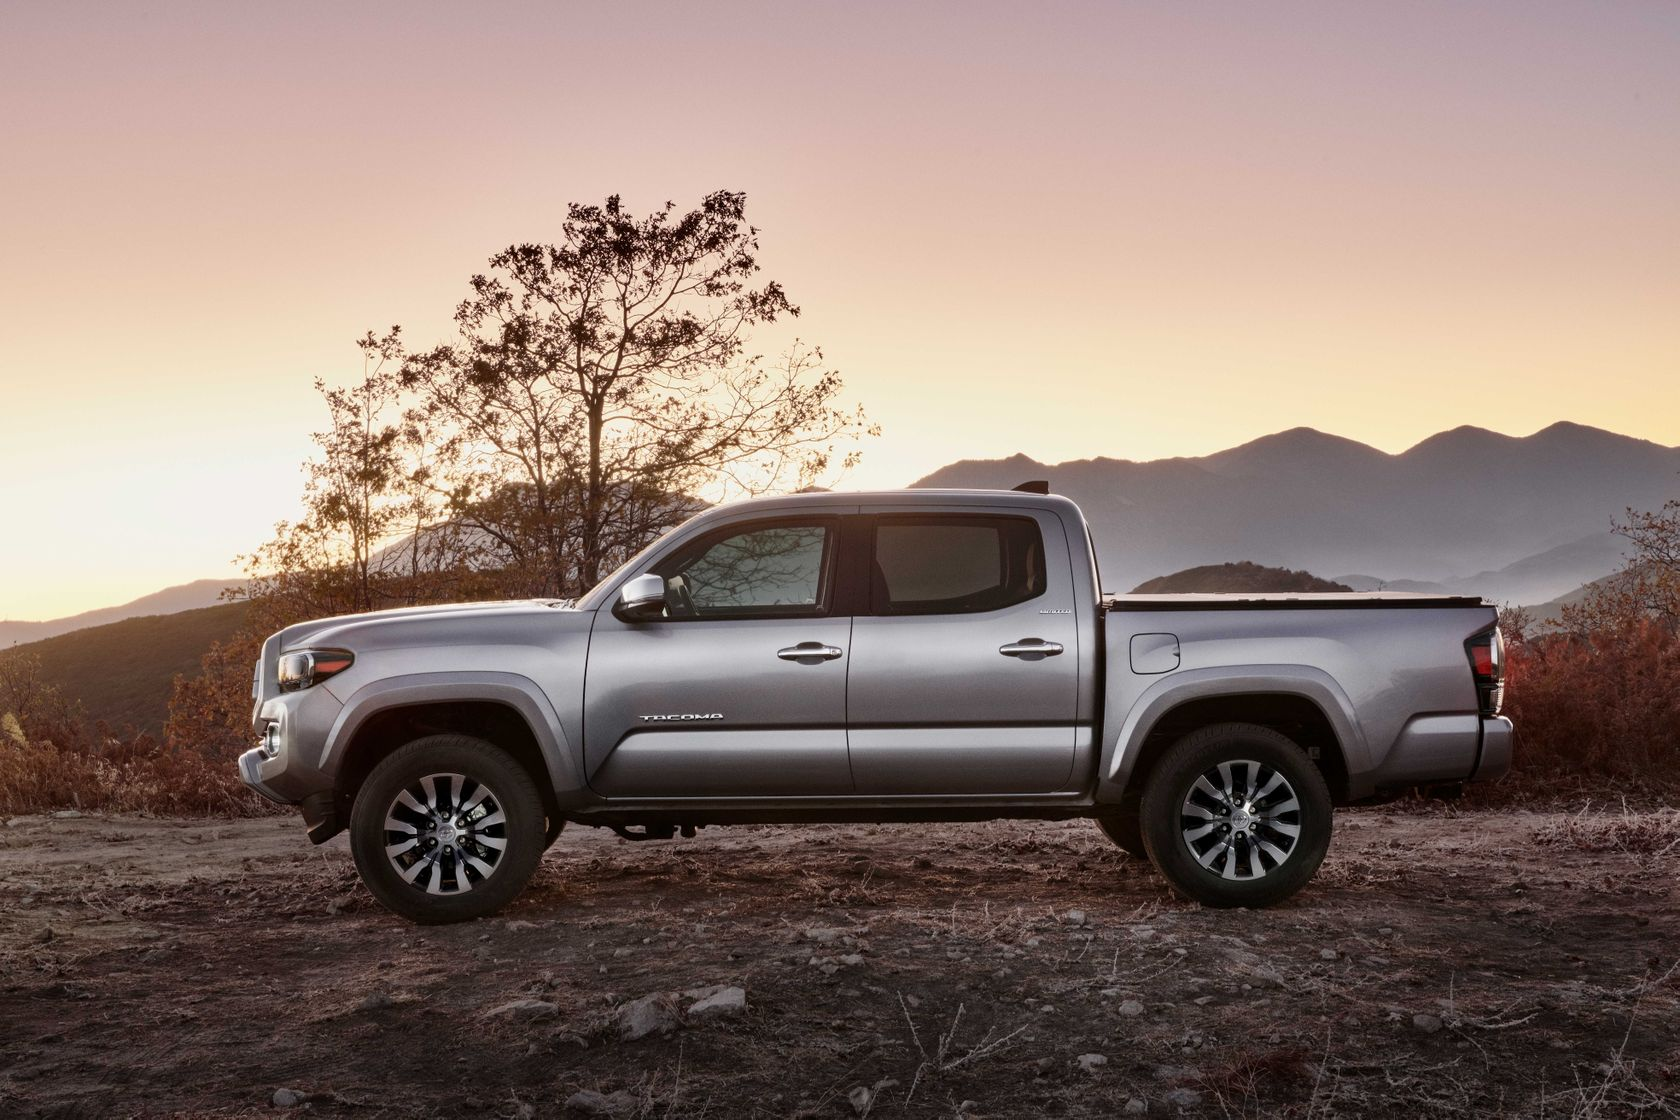 2020 Toyota Tacoma Positioned to Continue Segment Leadership